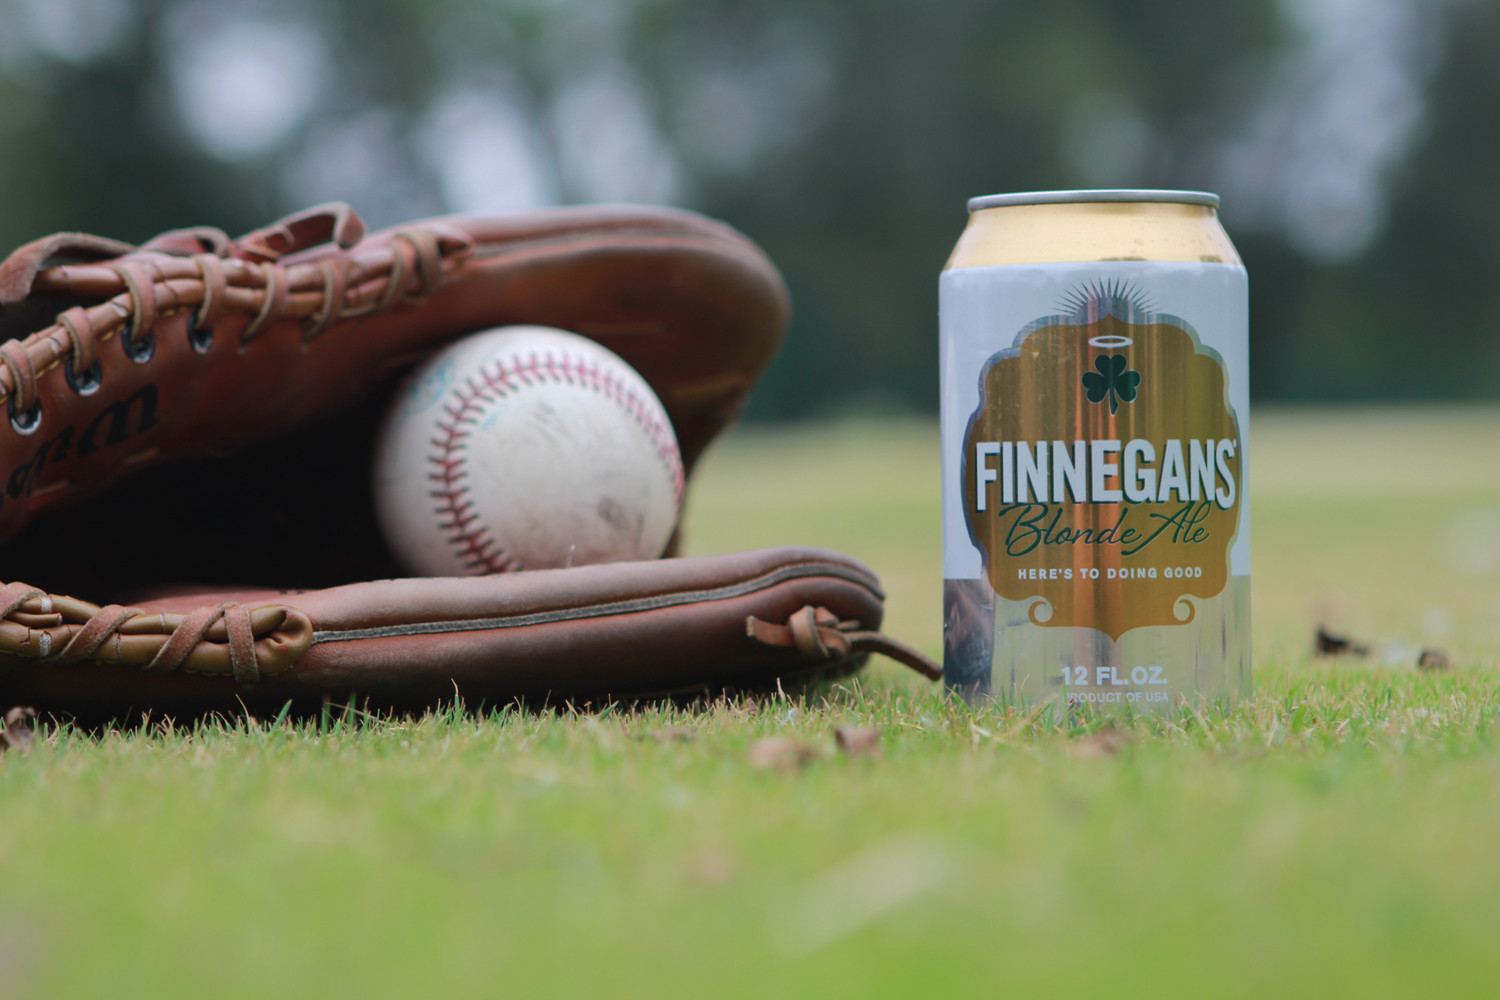 Finnegans Summer Blonde Ale goes perfectly with adventure.